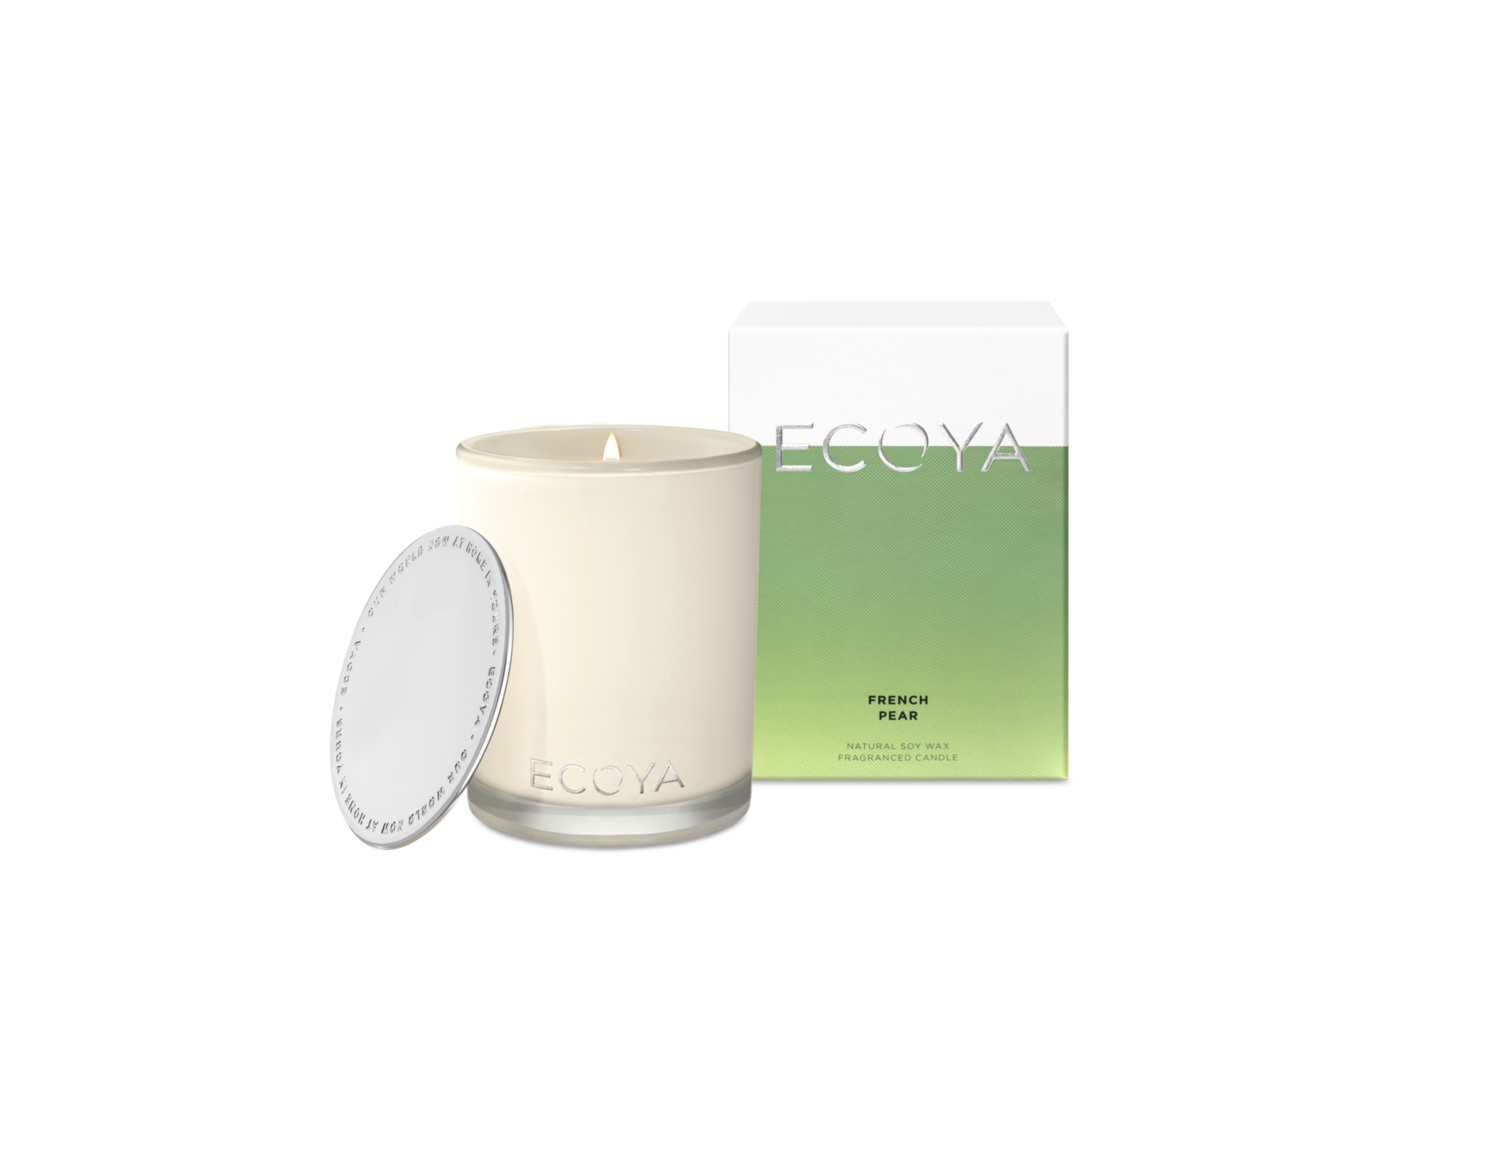 Ecoya Candle - French Pear